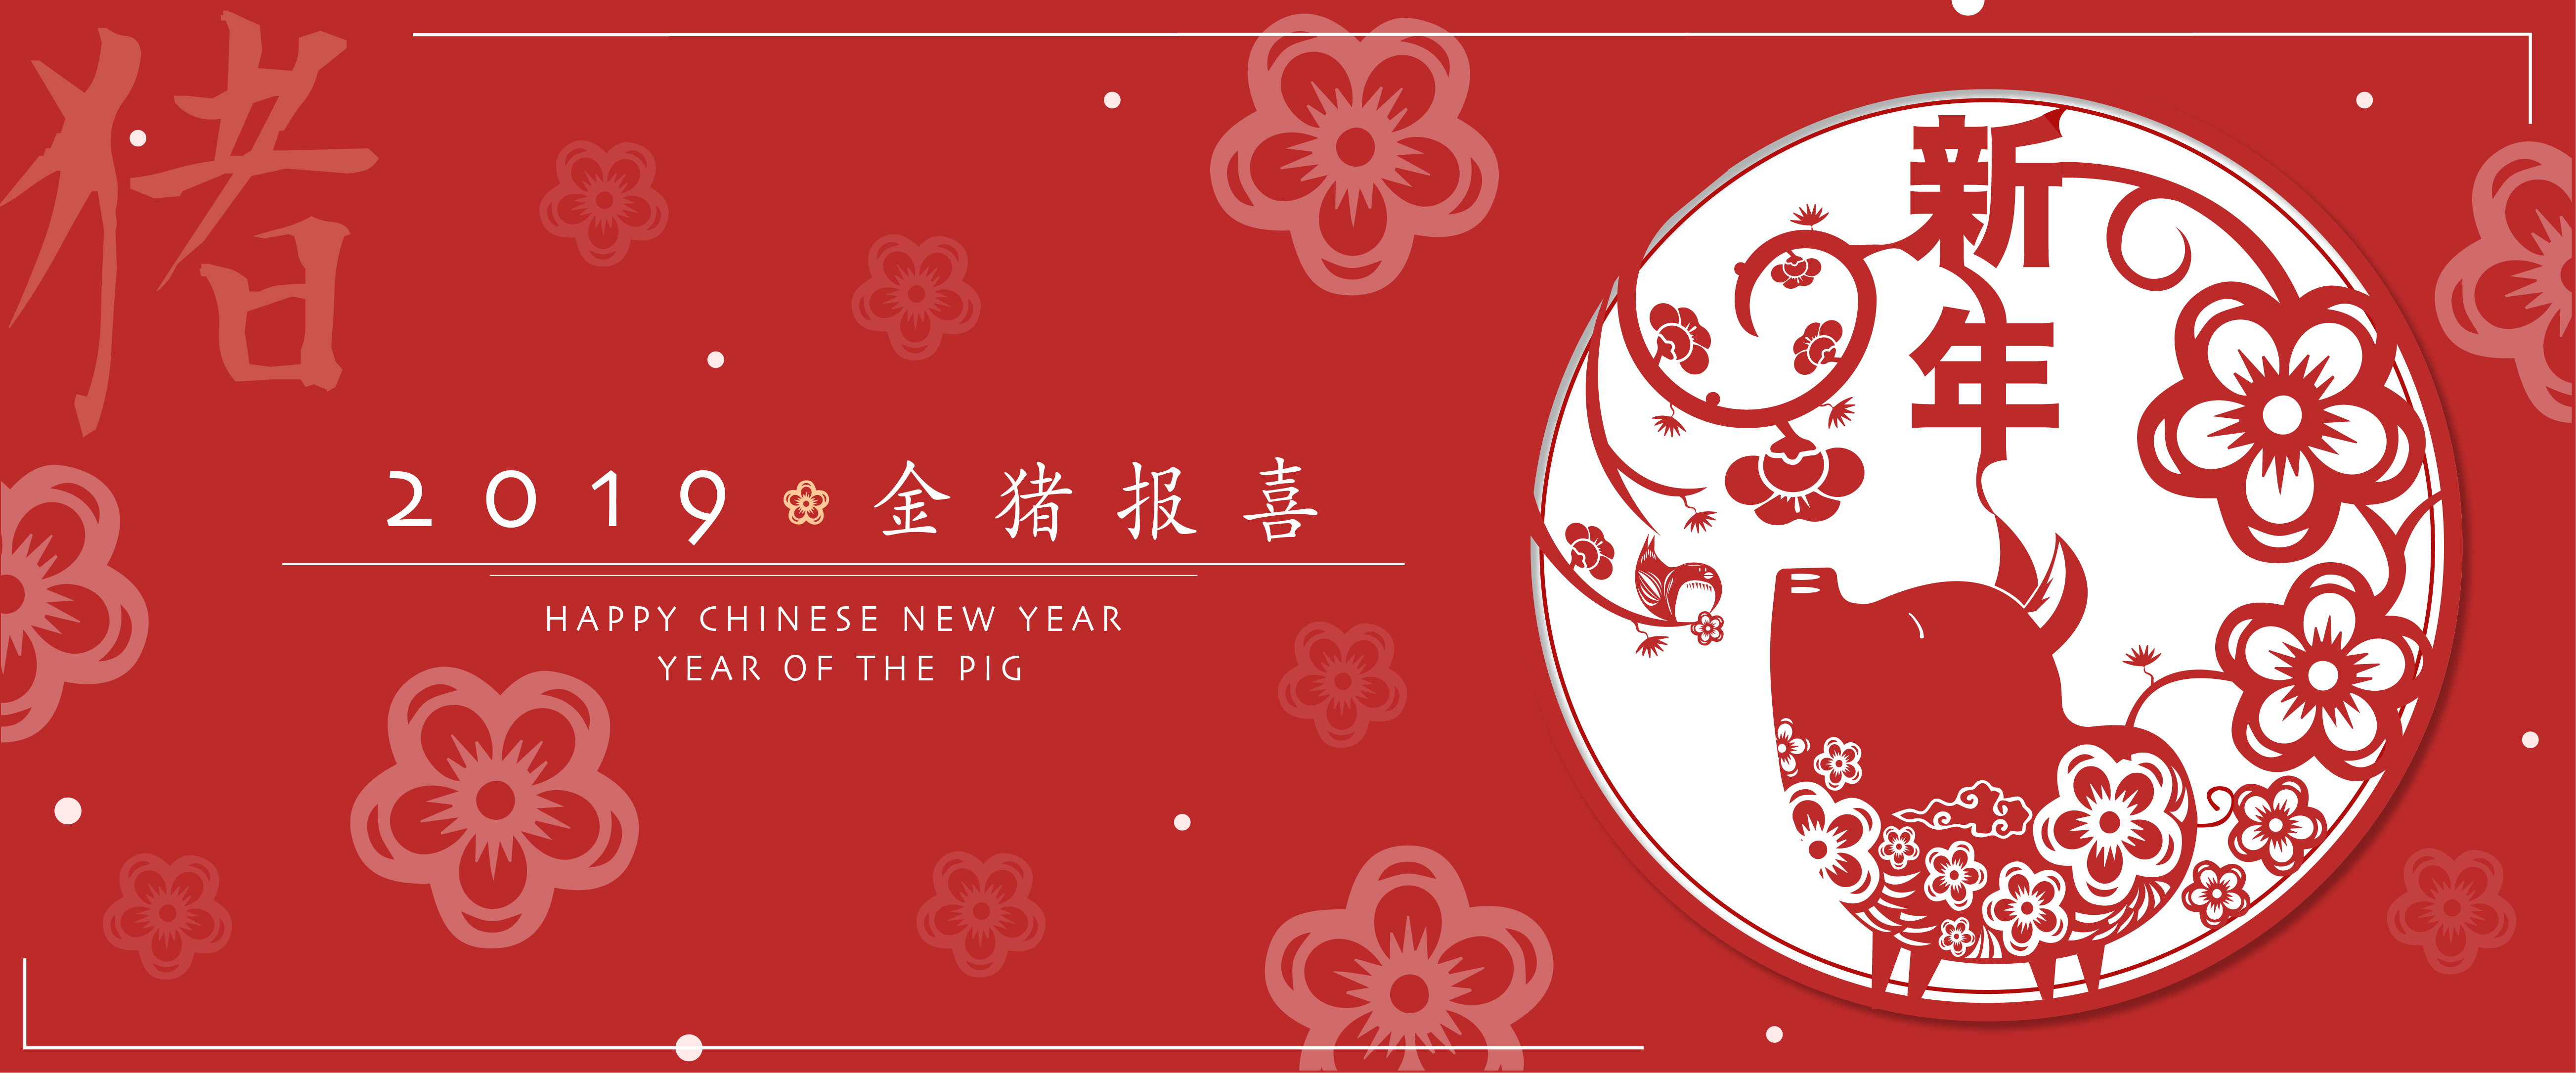 year-of-the-pig-07